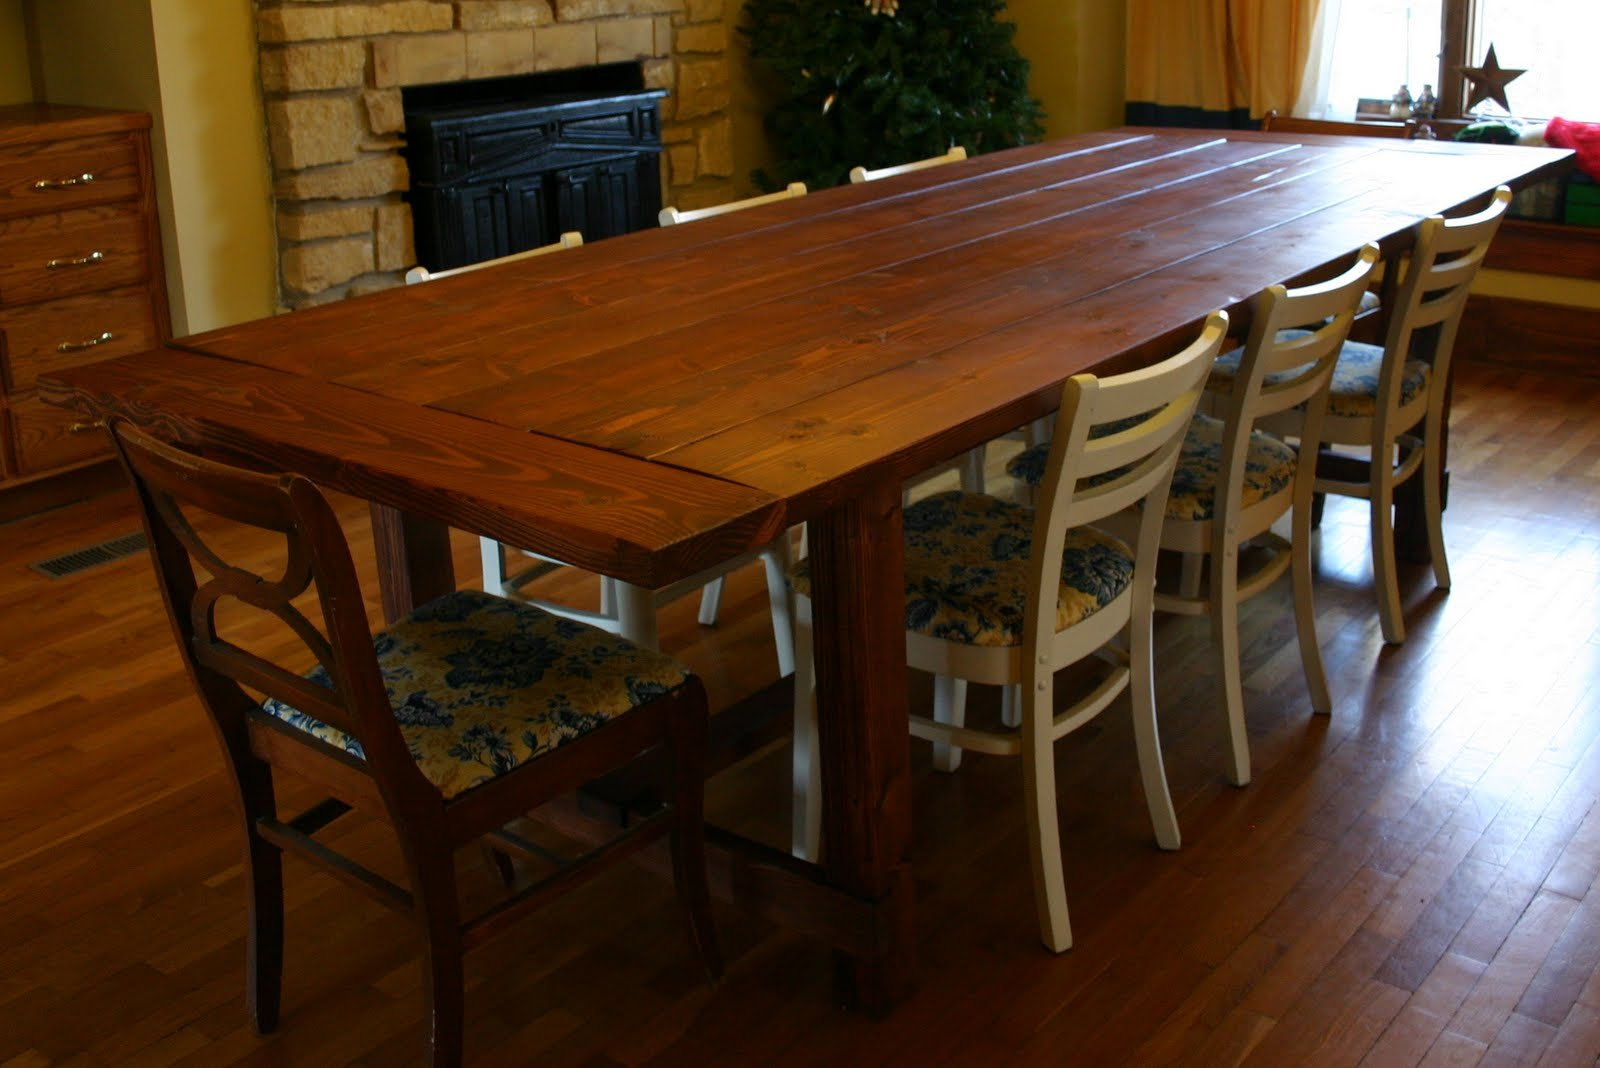 diy dining table plans diy kitchen table plans Rustic dining table plans